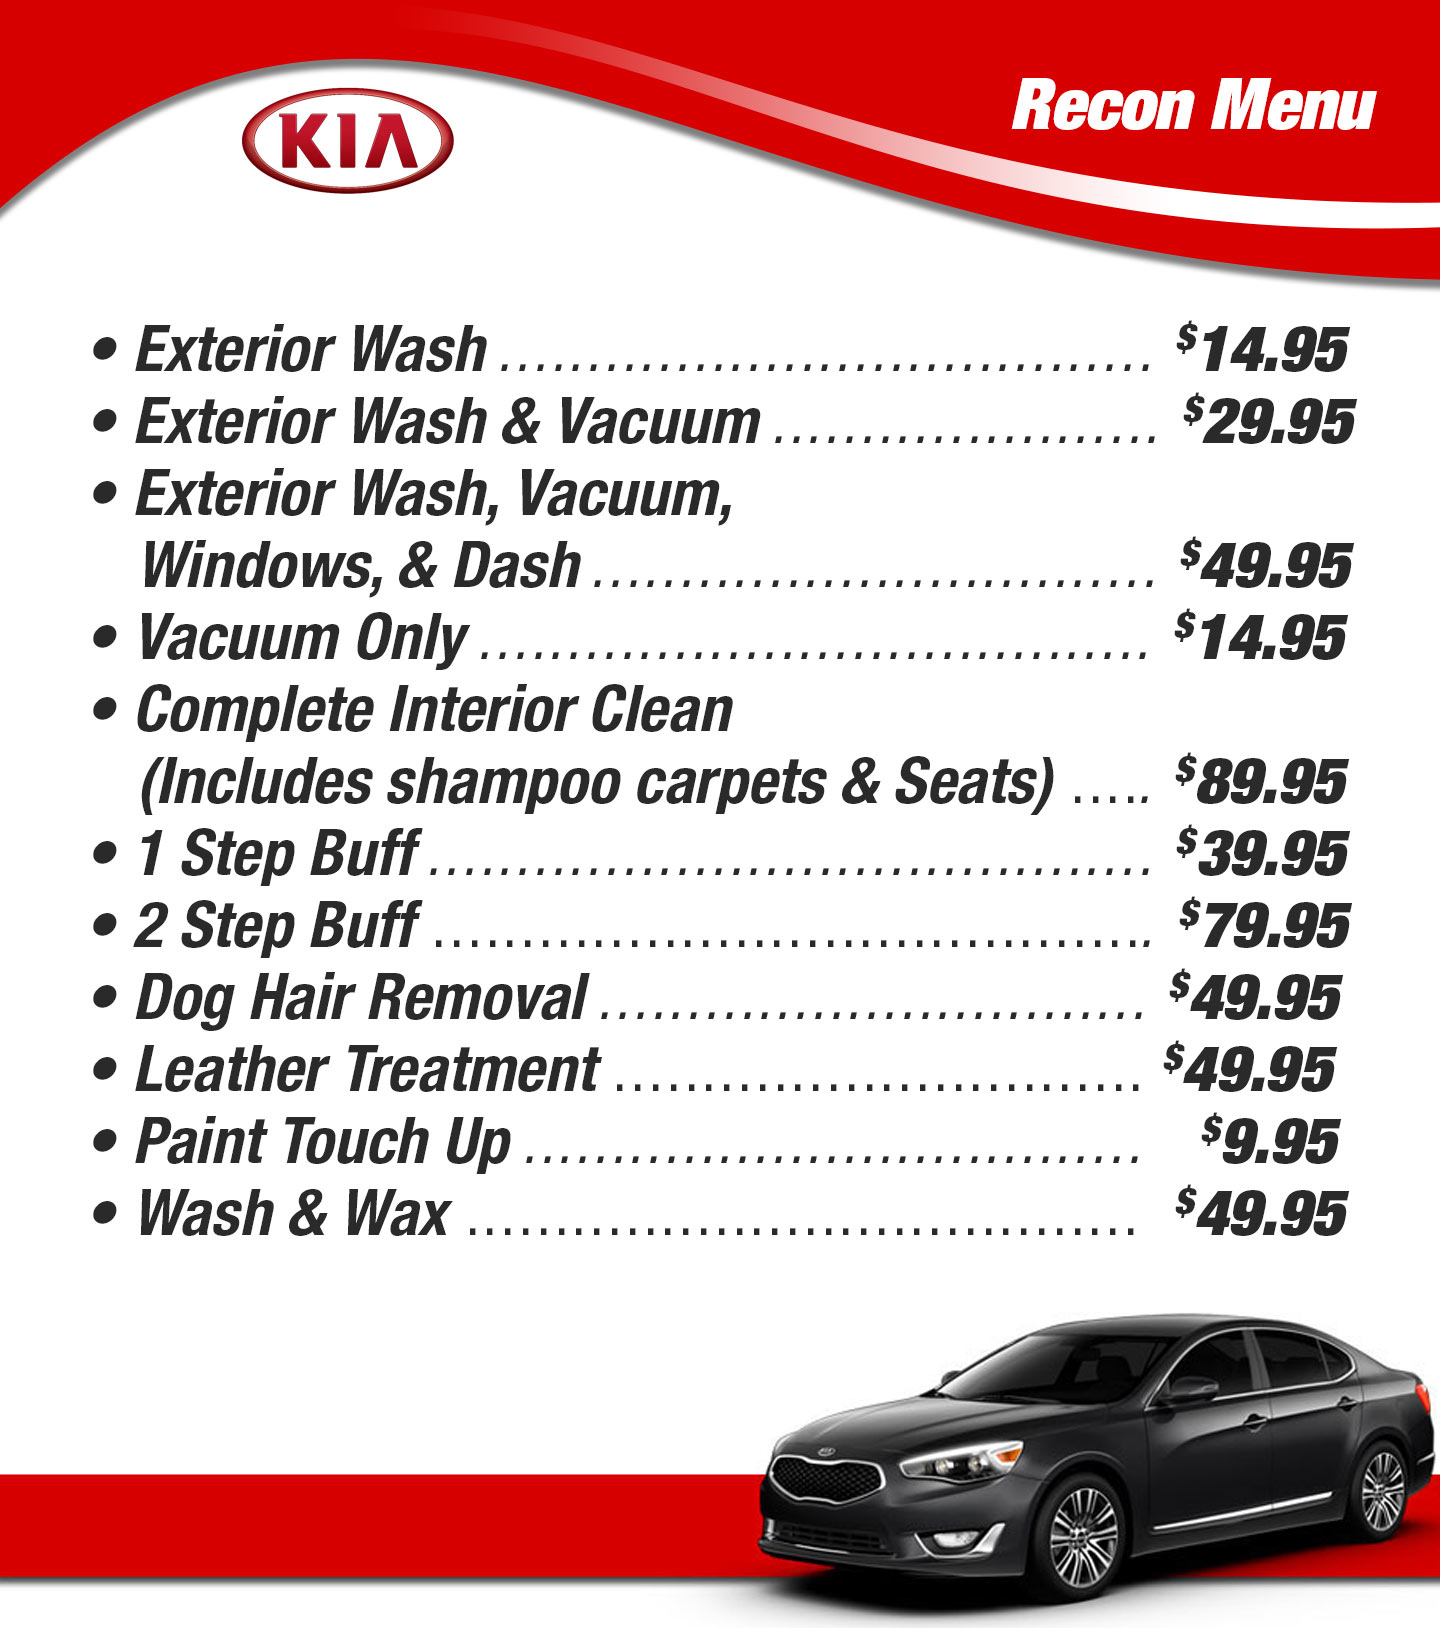 Garage Auto 95 Kia Service Parts Tires Freeway Auto And Discount Tire Center